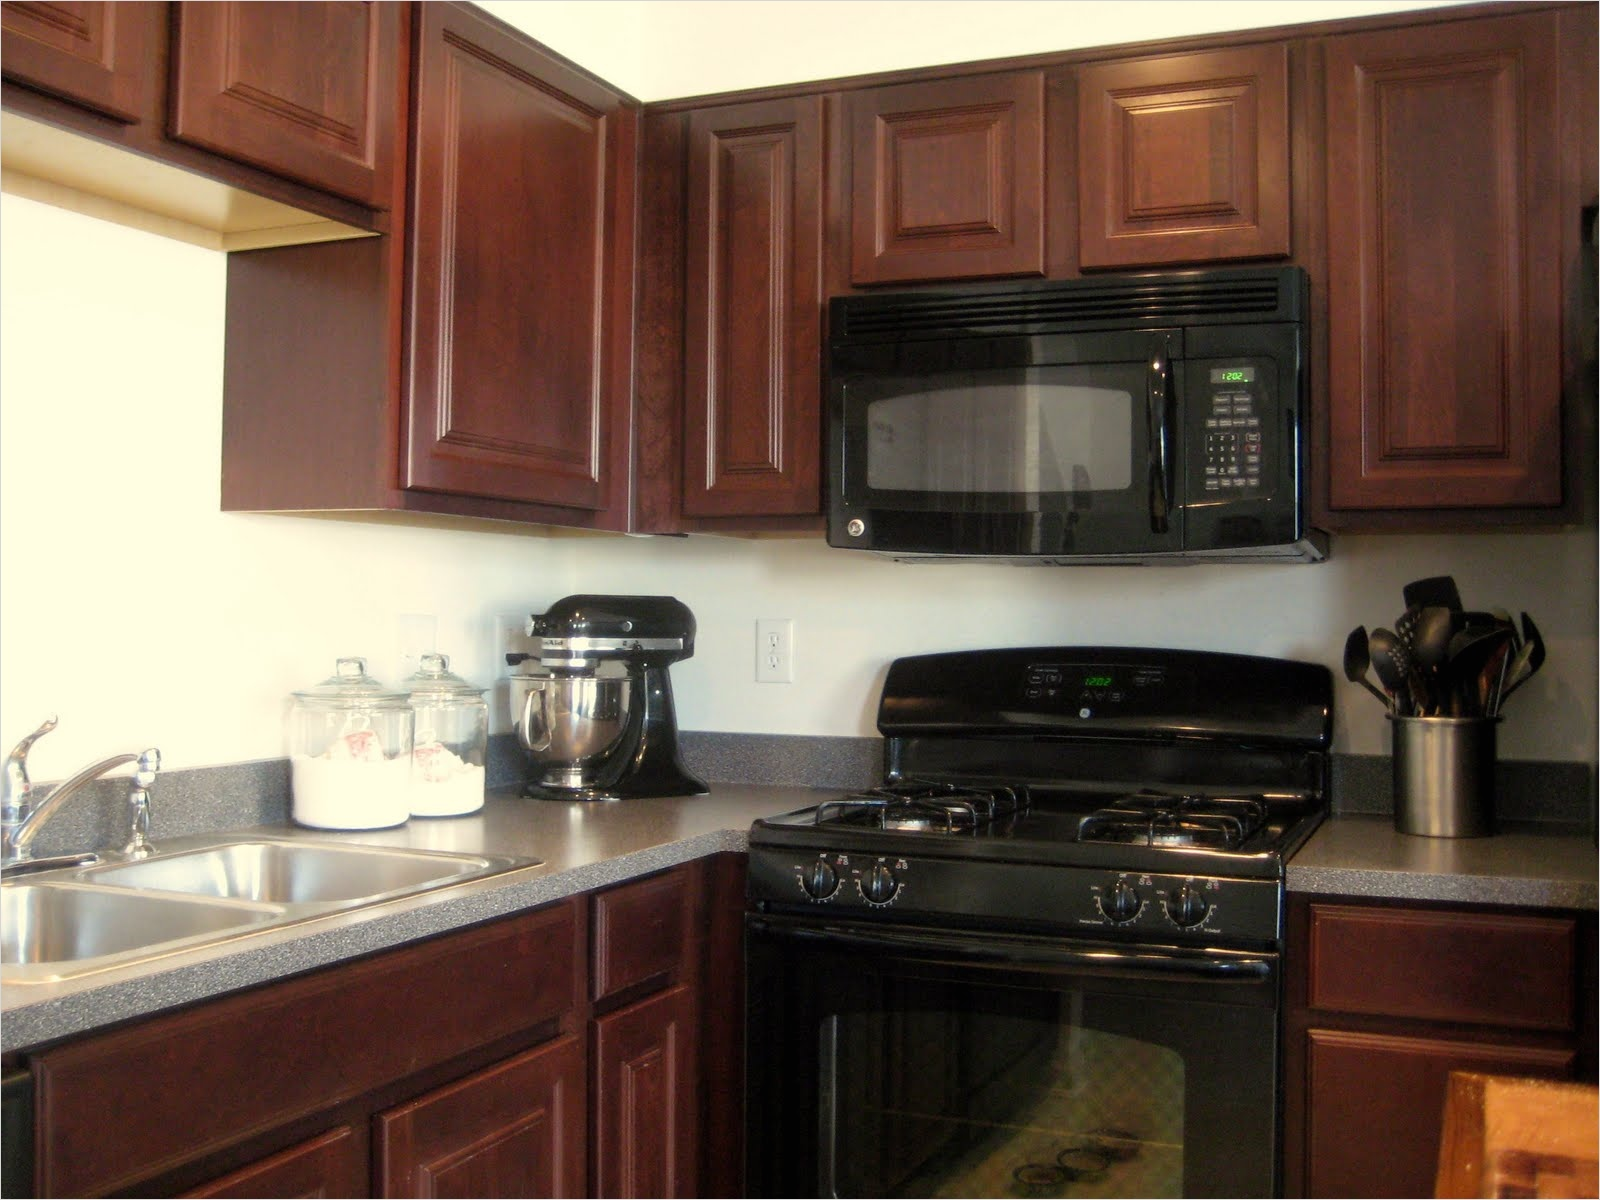 Kitchen with Maple Cabinets Color Ideas 63 Kitchen Lake forest Park Residence 109 Kitchen Color Ideas with Maple Cabinets Ahhualongganggou 9